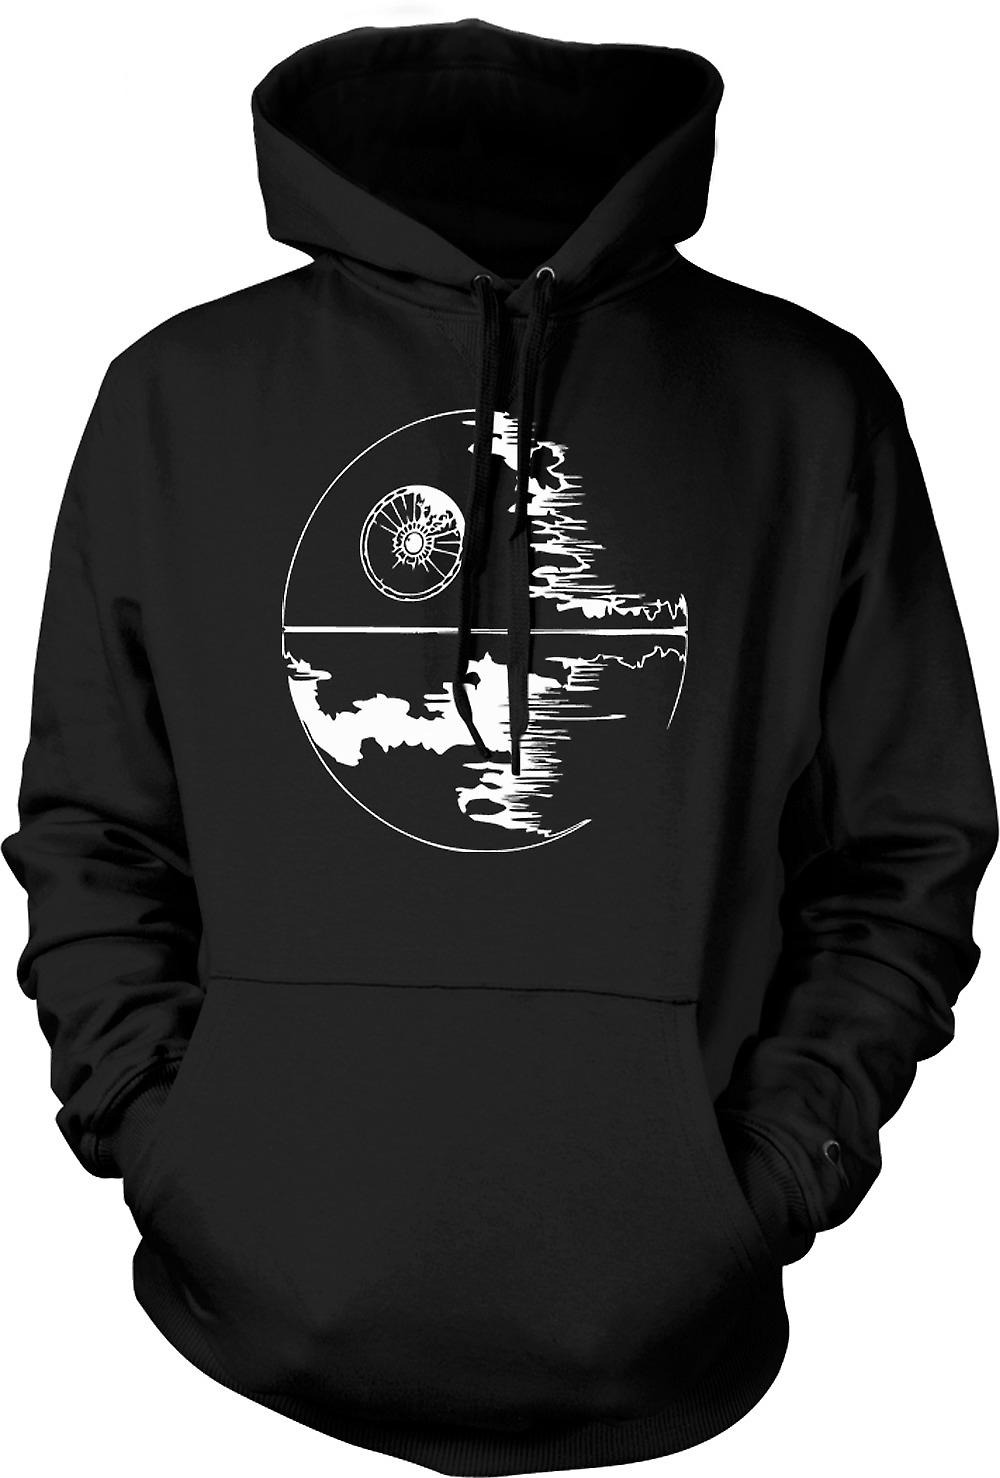 Mens Hoodie - Death Star Under Construction